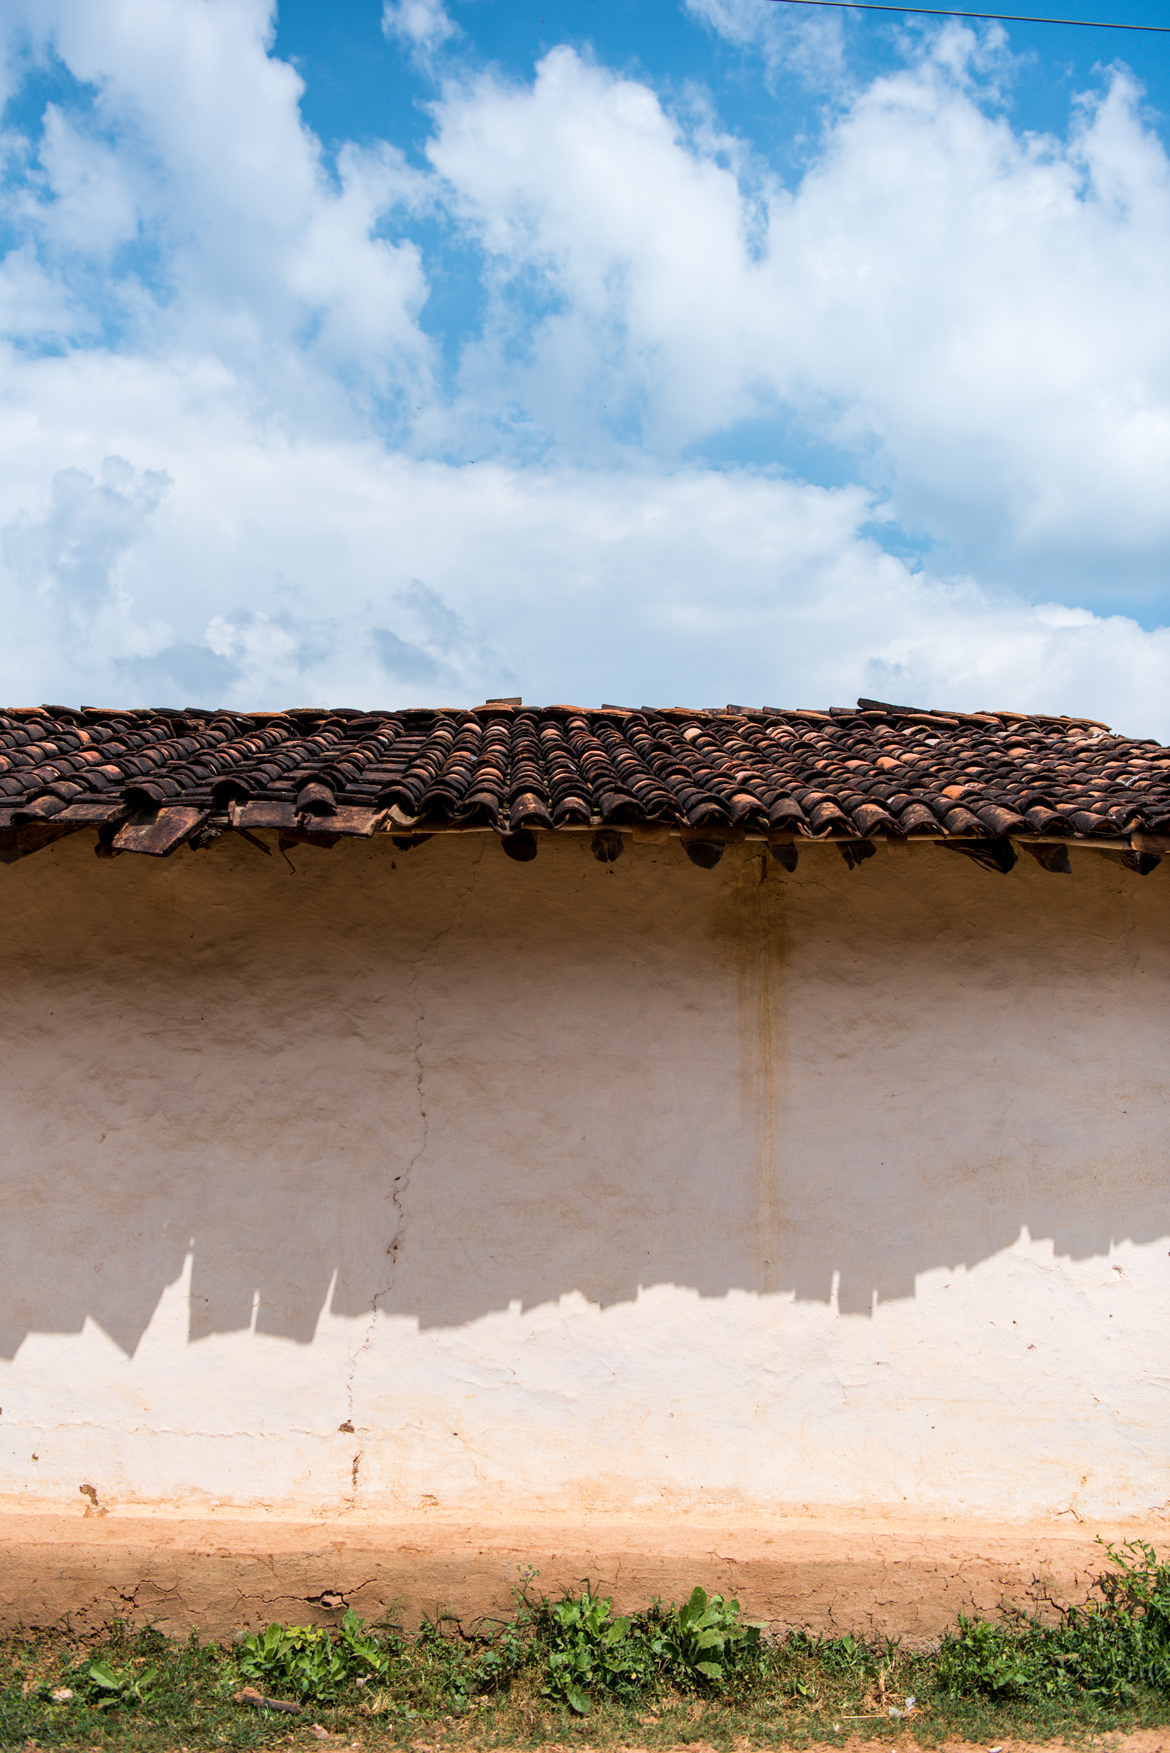 Khaprael, or baked earthen tiles, have more or less replaced the thatched roofs more common in the past.